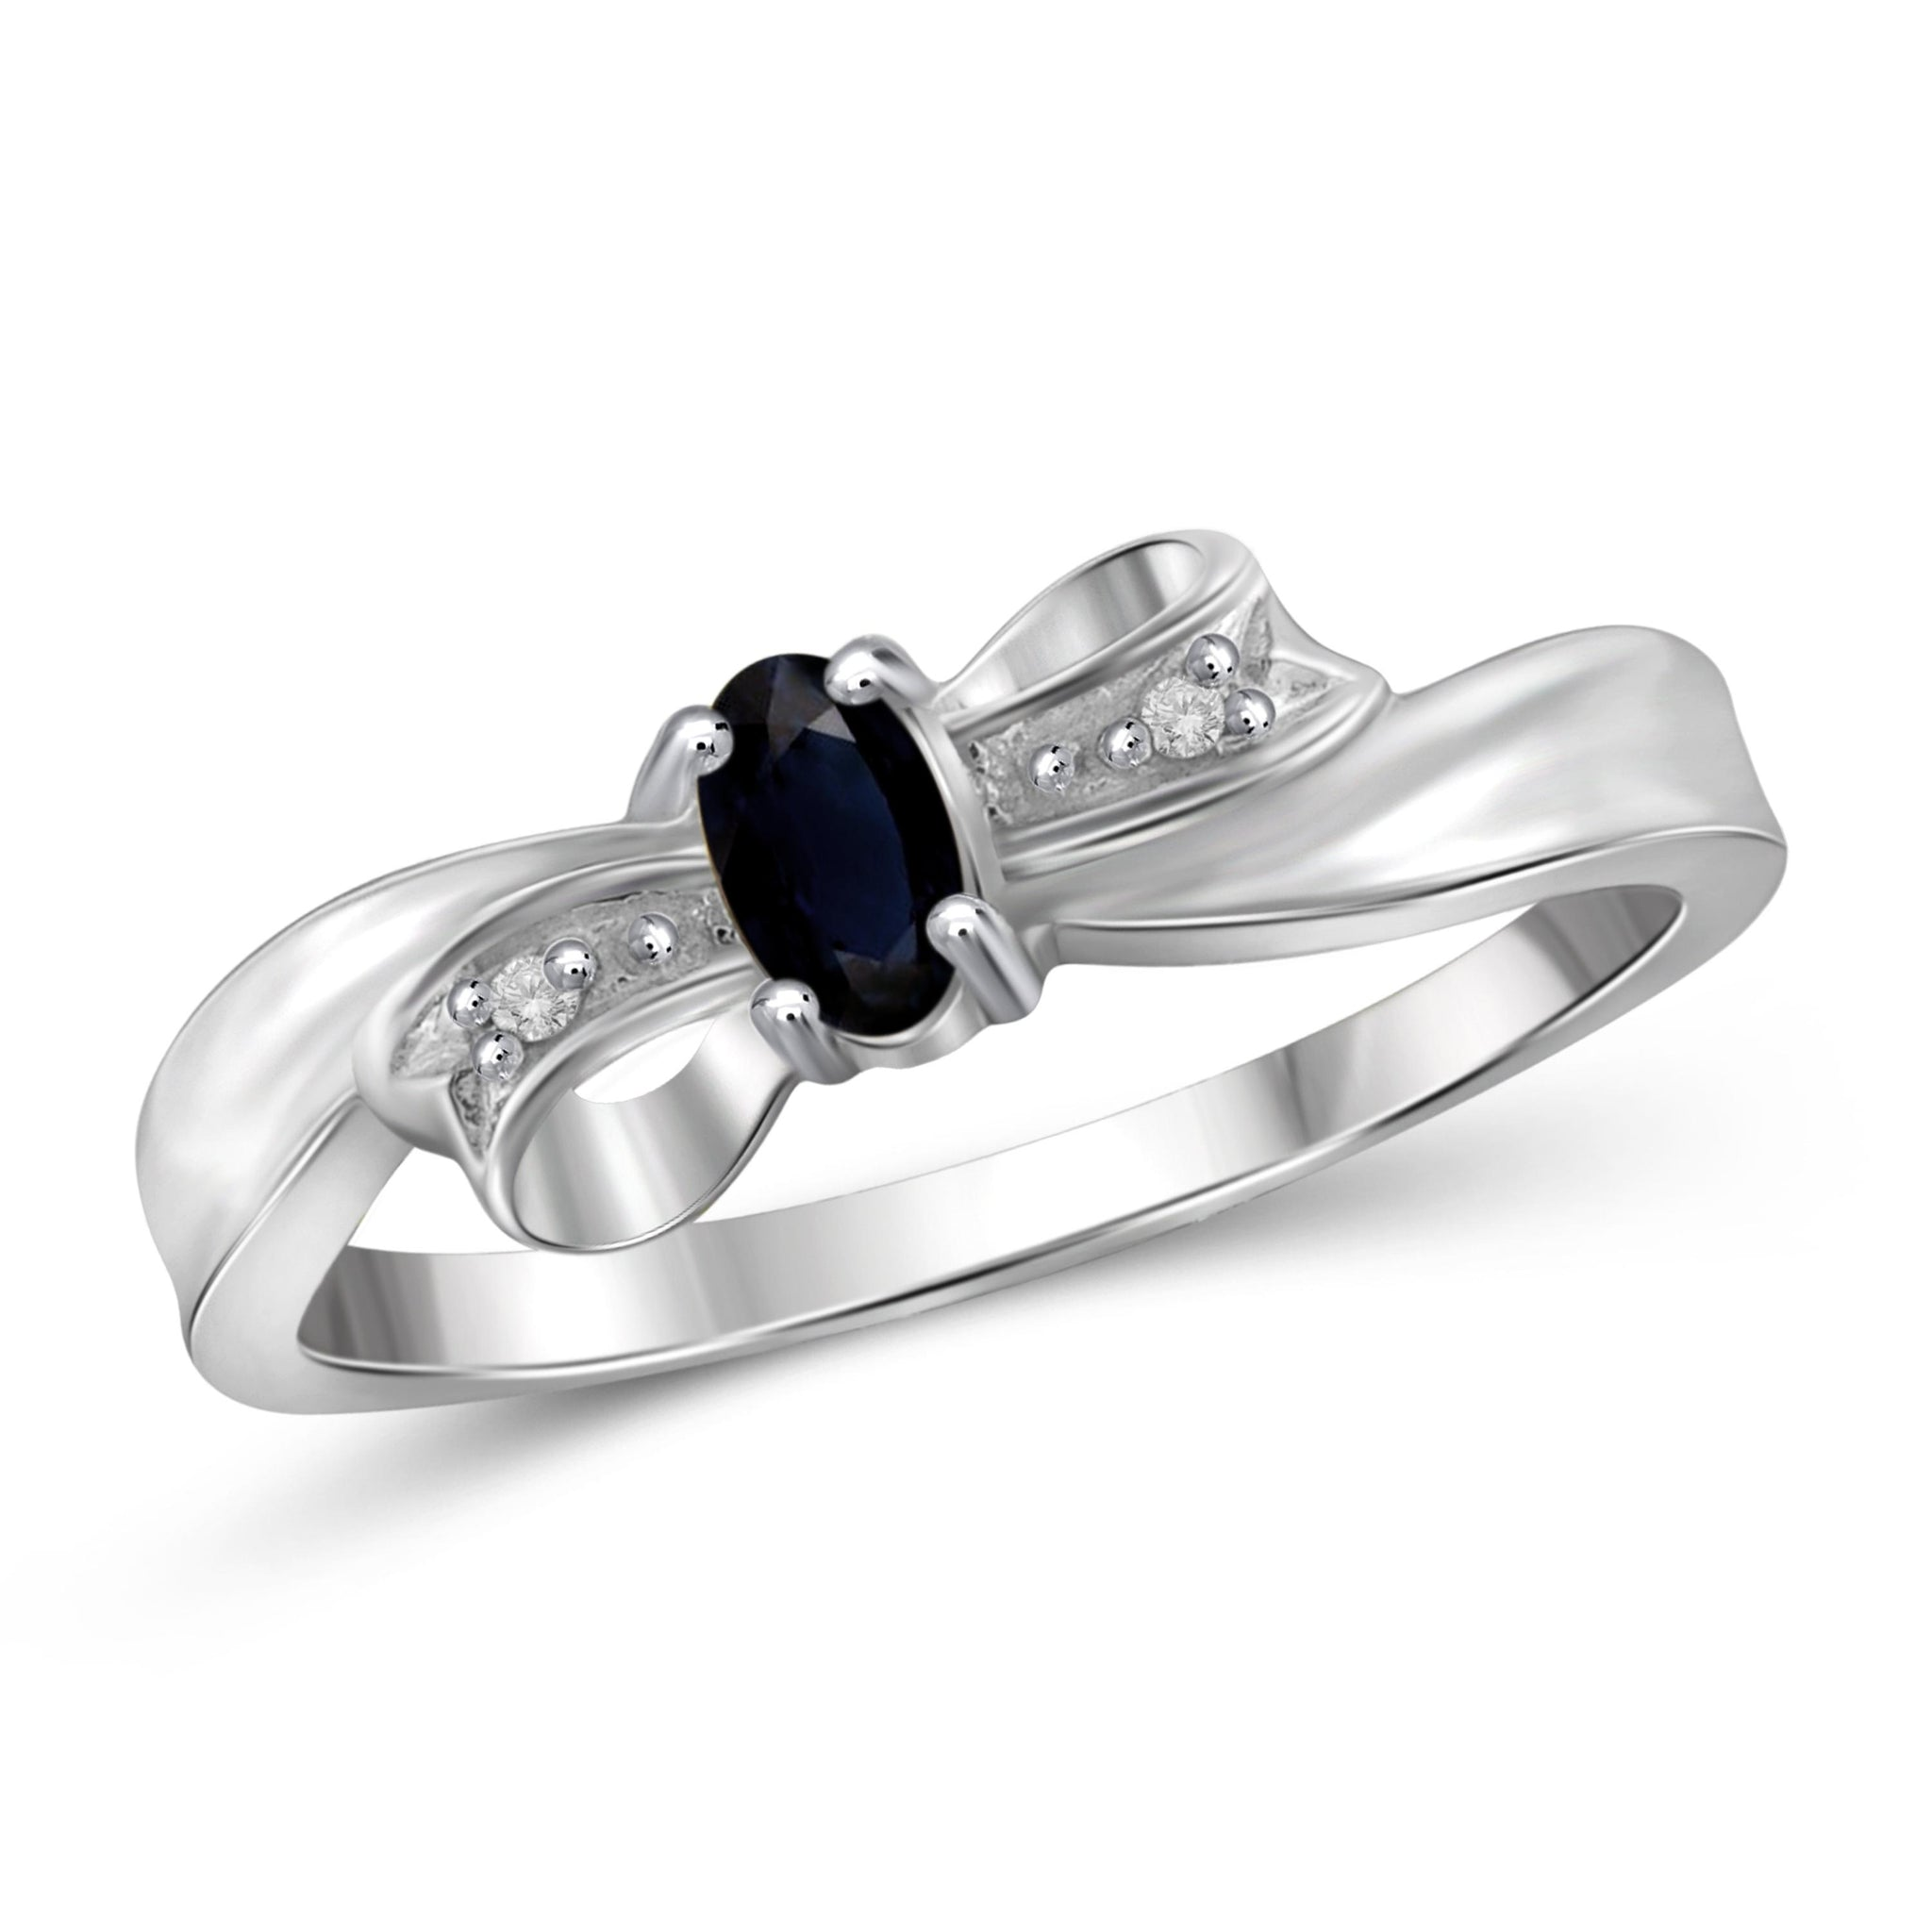 JewelonFire 0.30 Carat T.G.W. Sapphire and White Diamond Accent Sterling Silver Ring - Assorted Colors